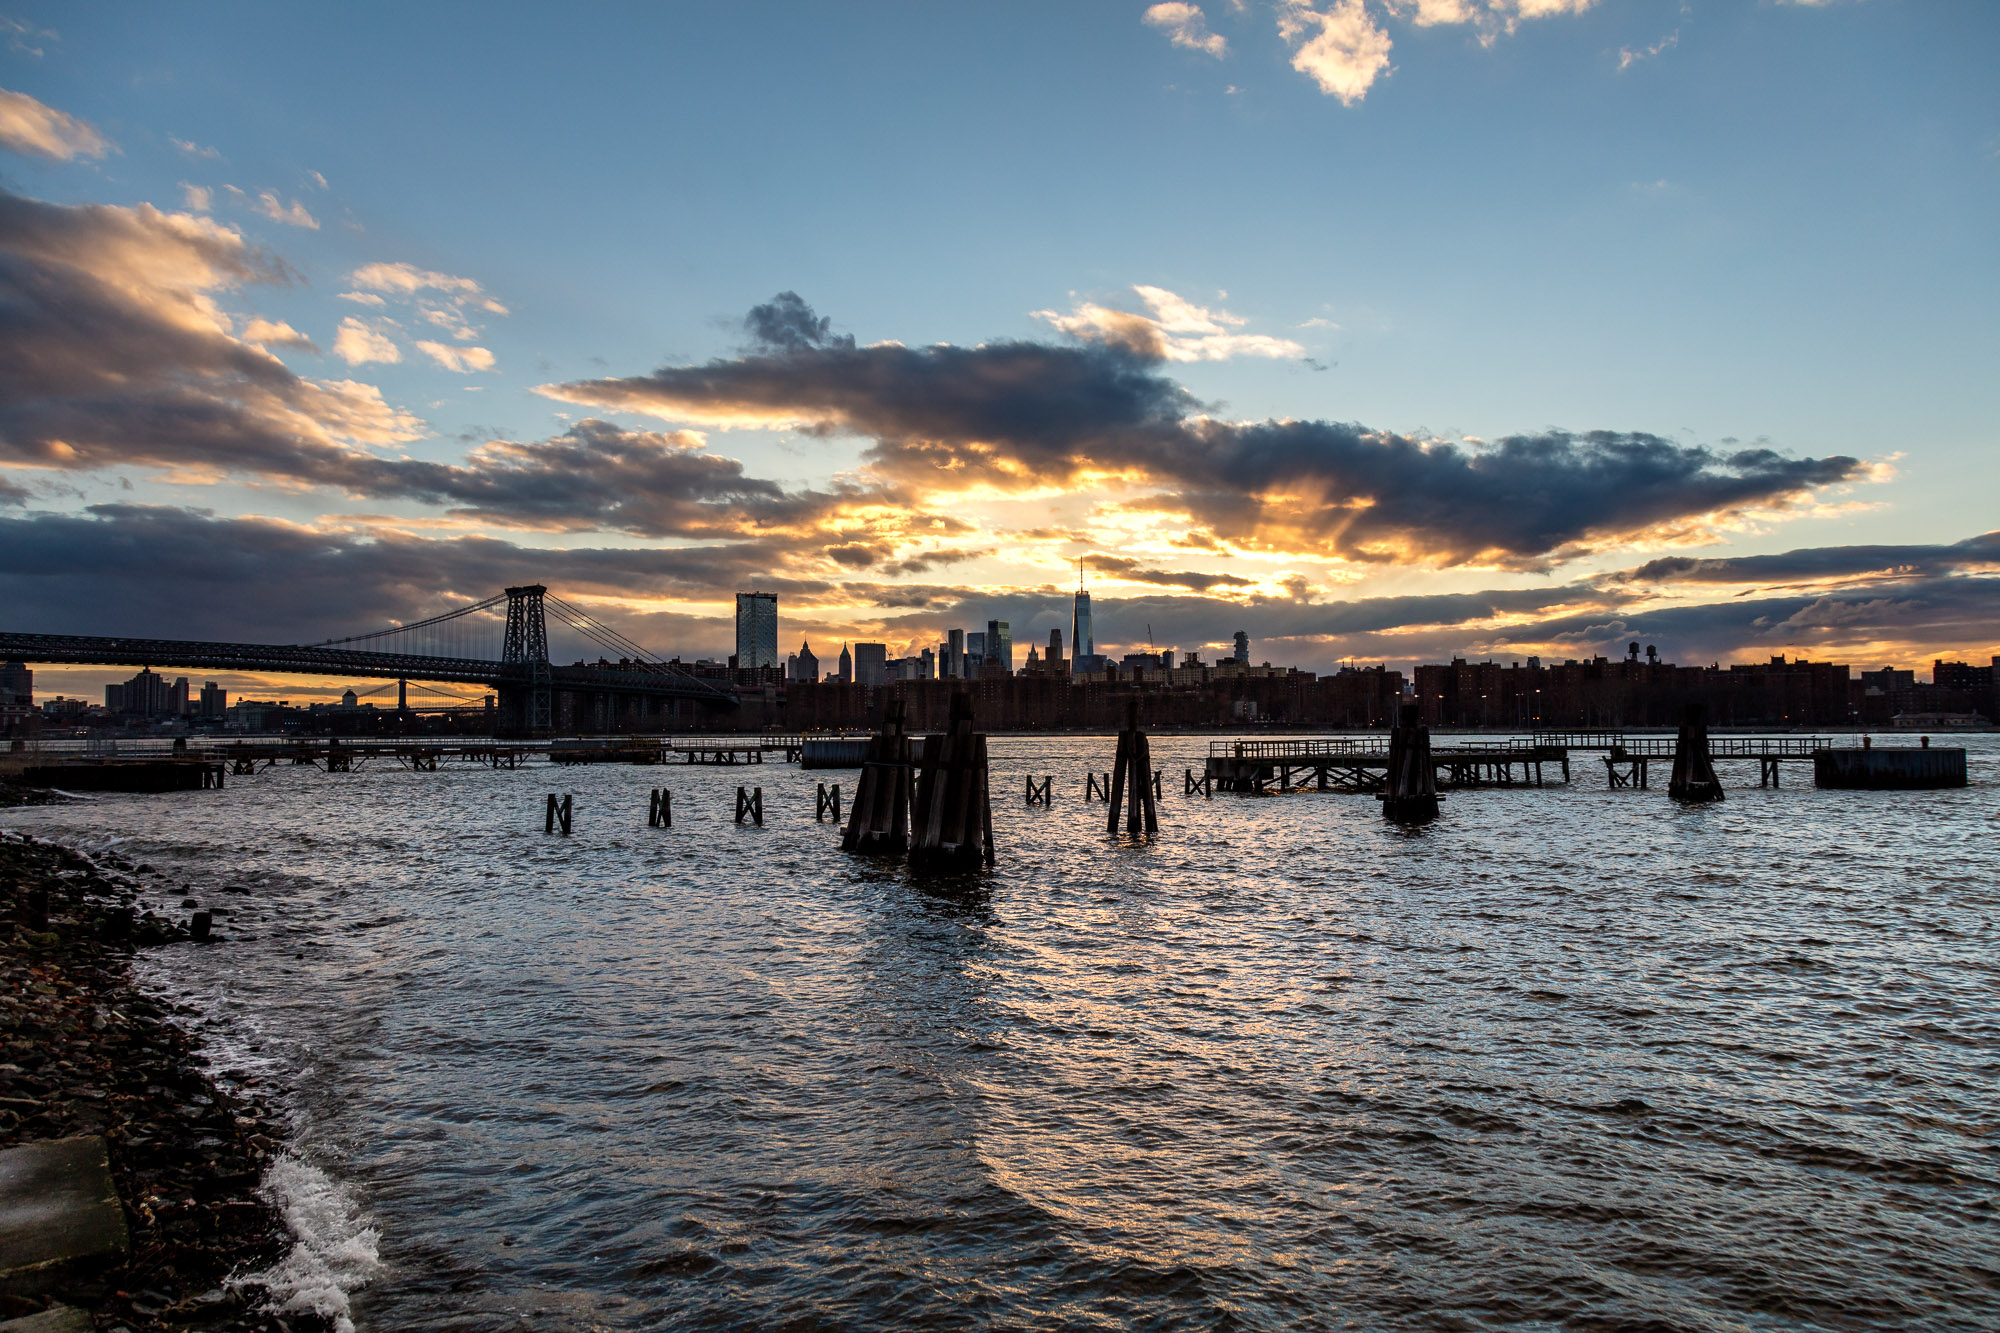 Swimming in the East River could happen sooner than you think